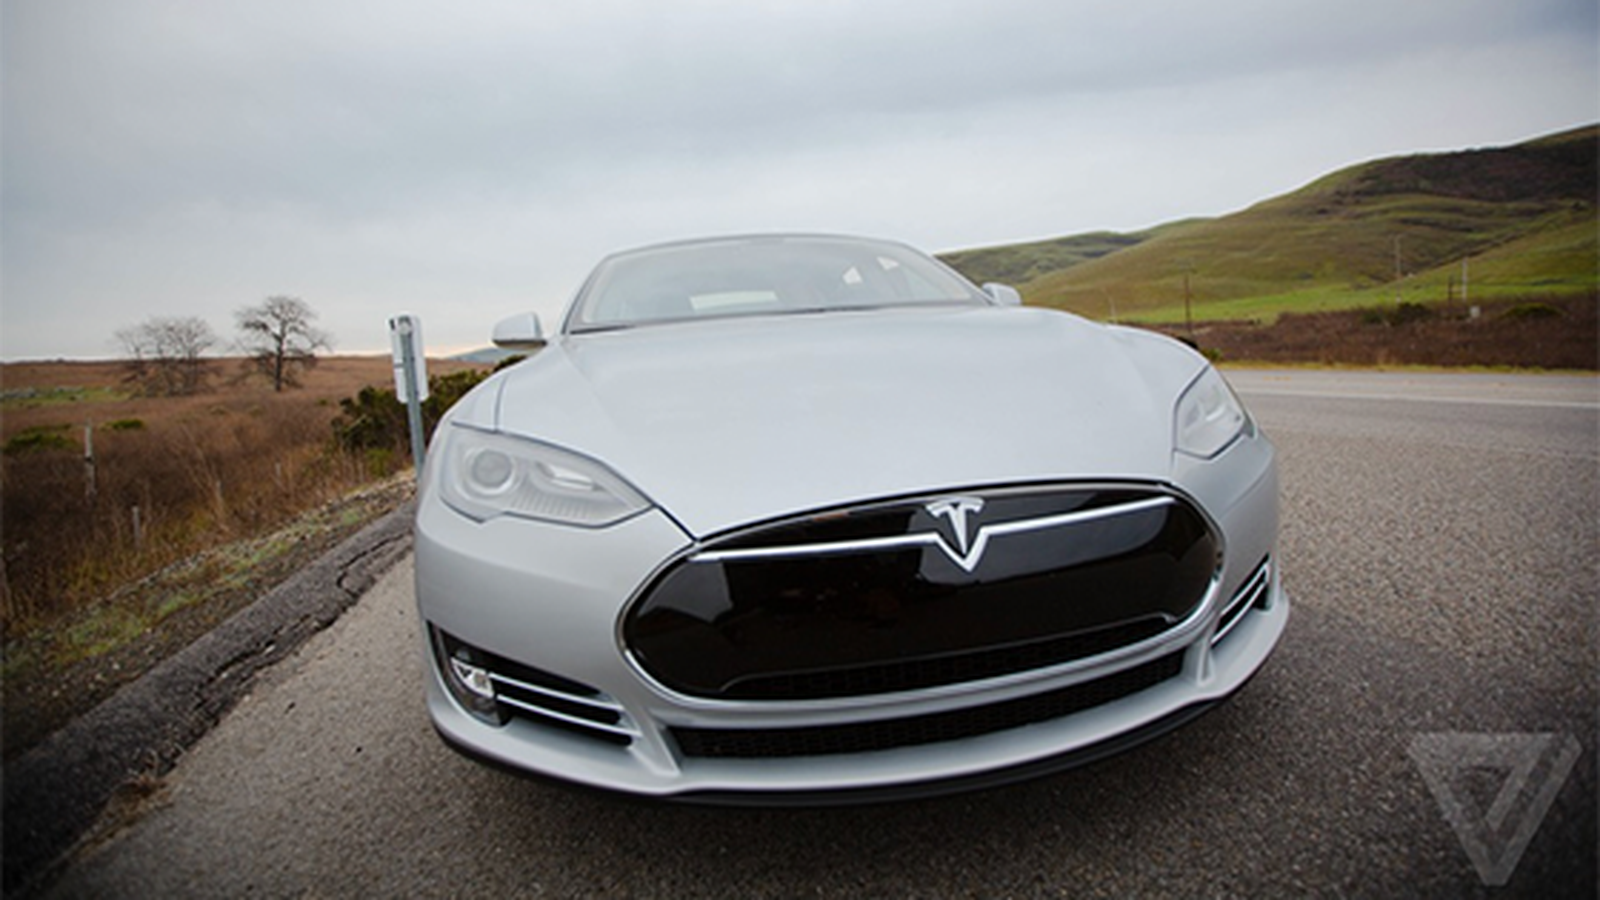 Tesla driver killed in crash with Autopilot active, NHTSA investigating